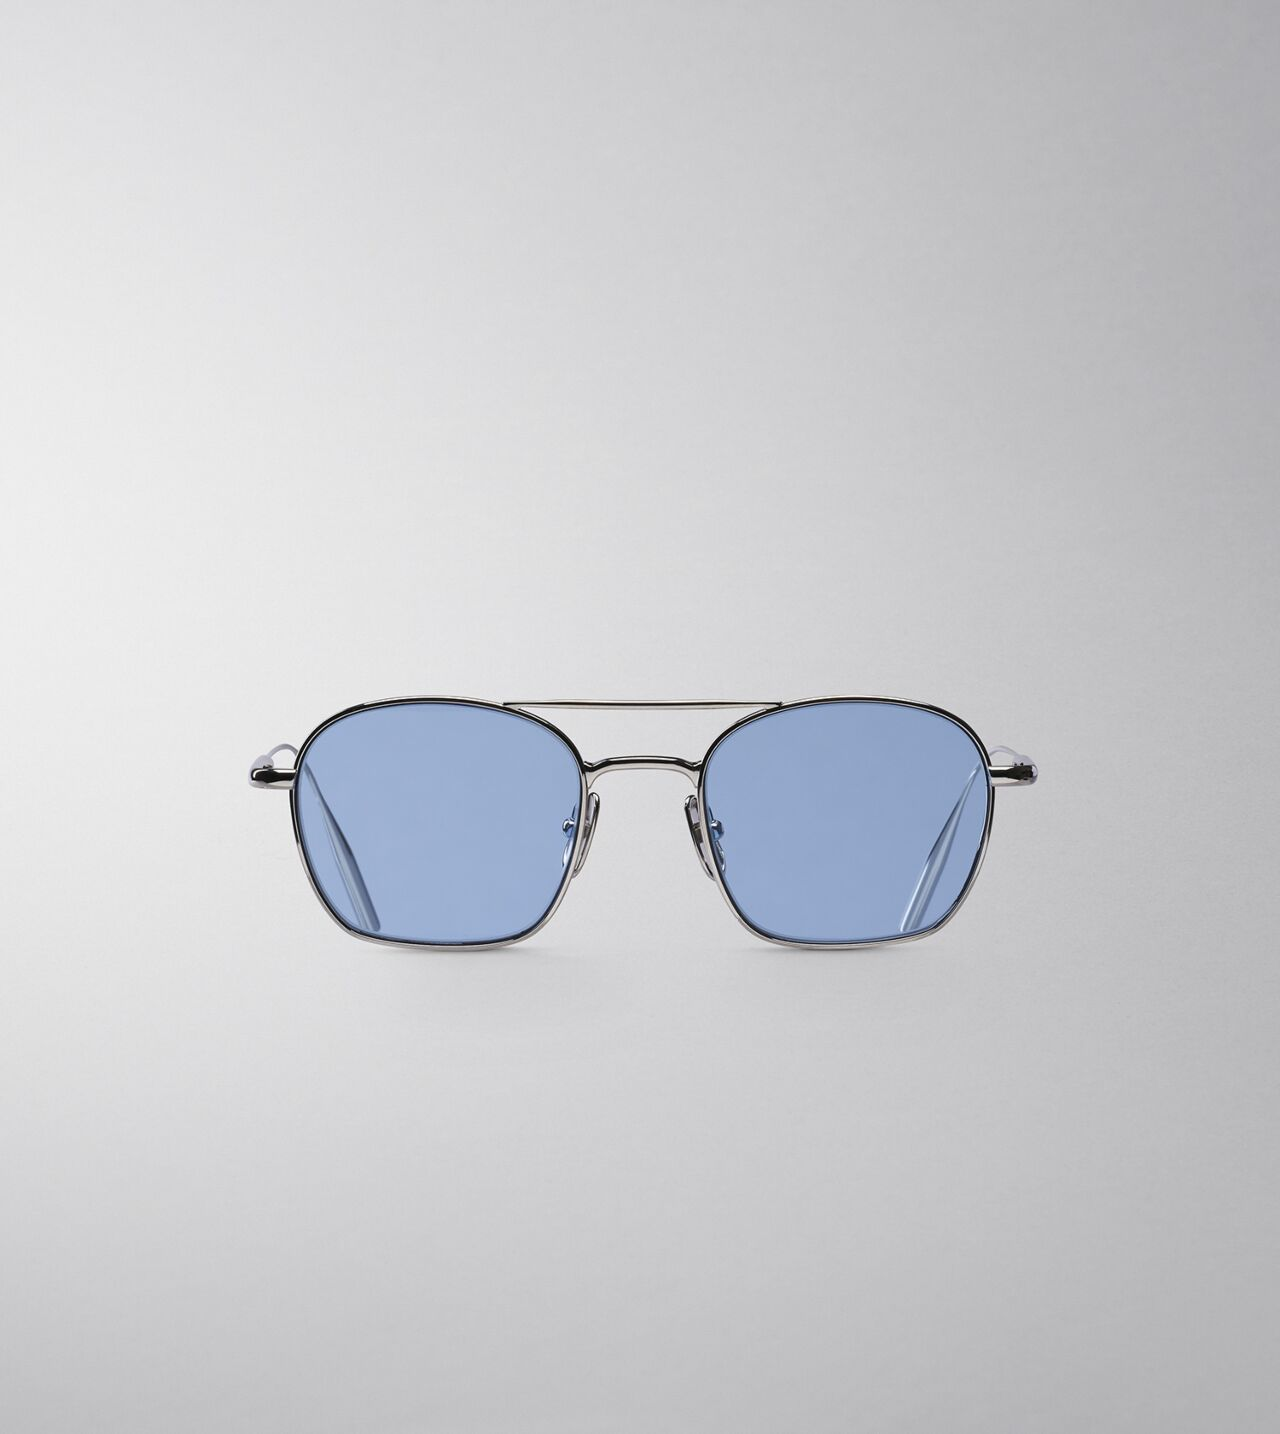 Picture of Byredo The Engineer in Palladium blue